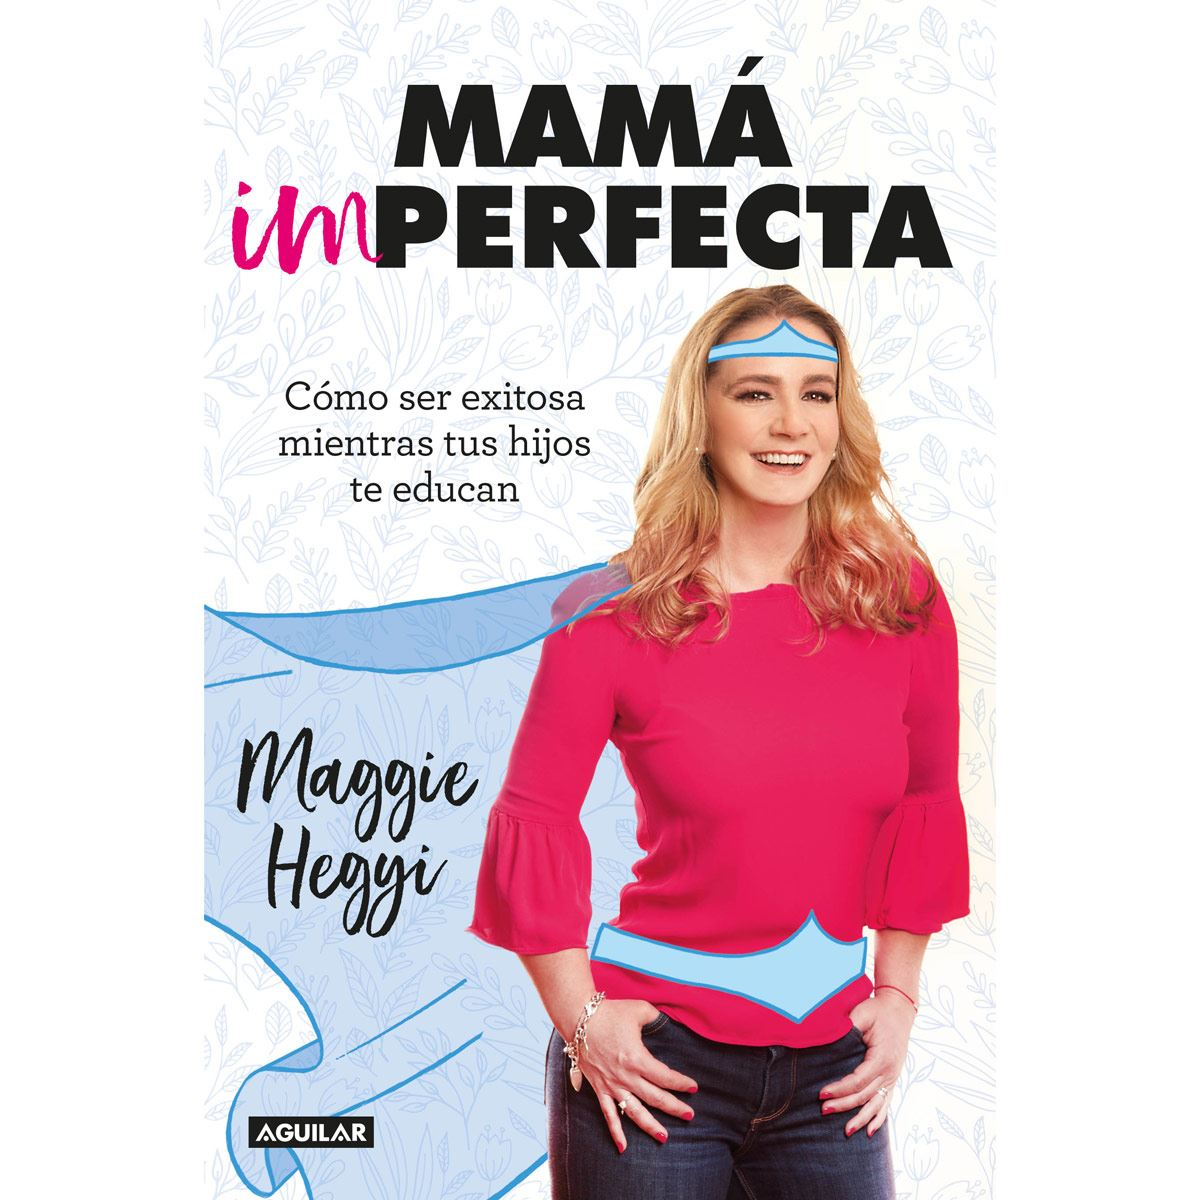 Mamá imperfecta